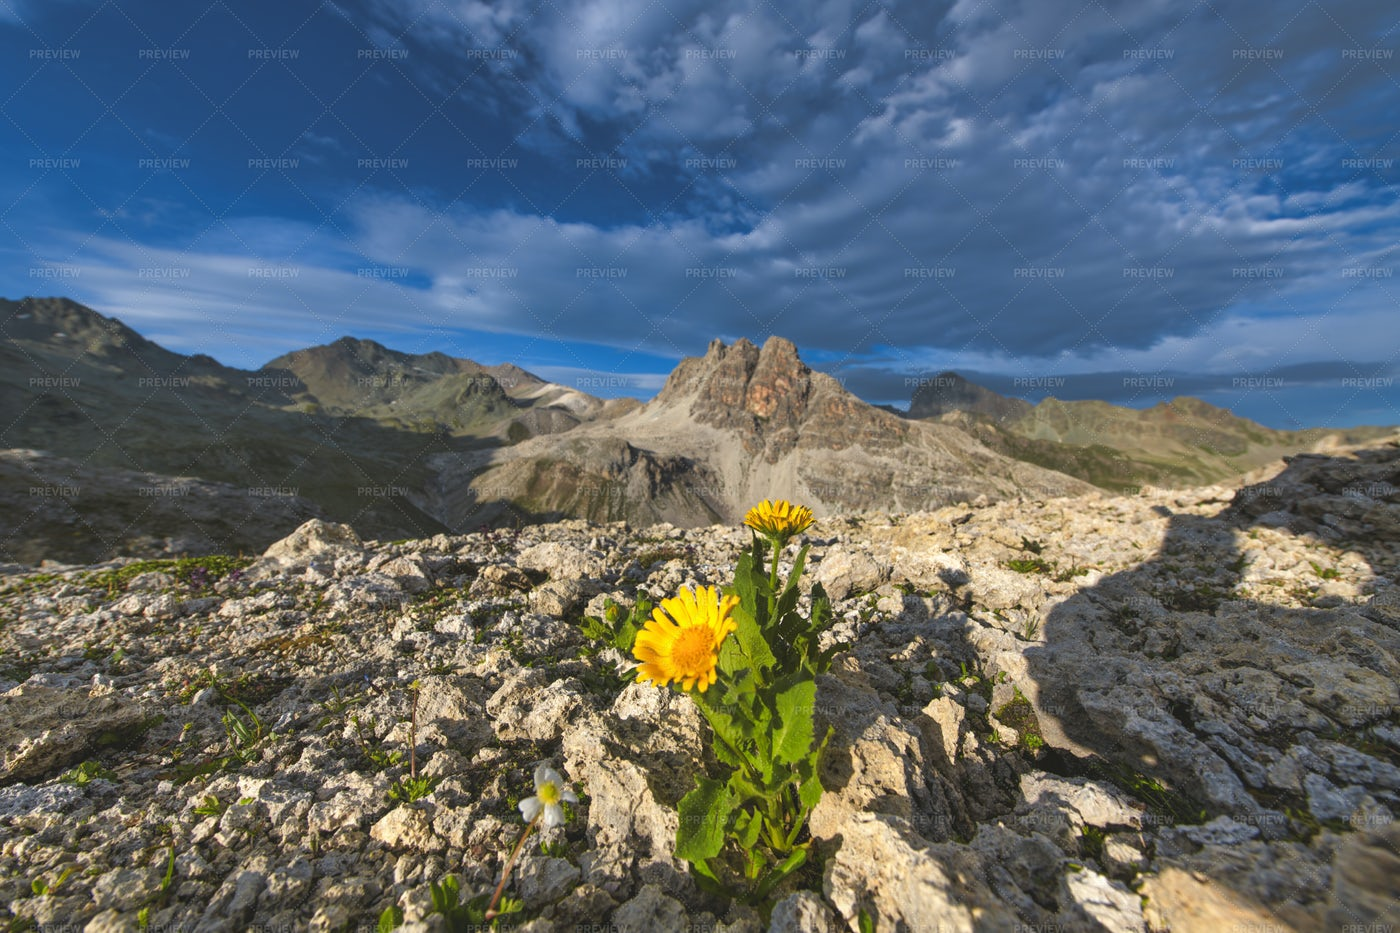 Flowers Sprouting Among Rocks: Stock Photos